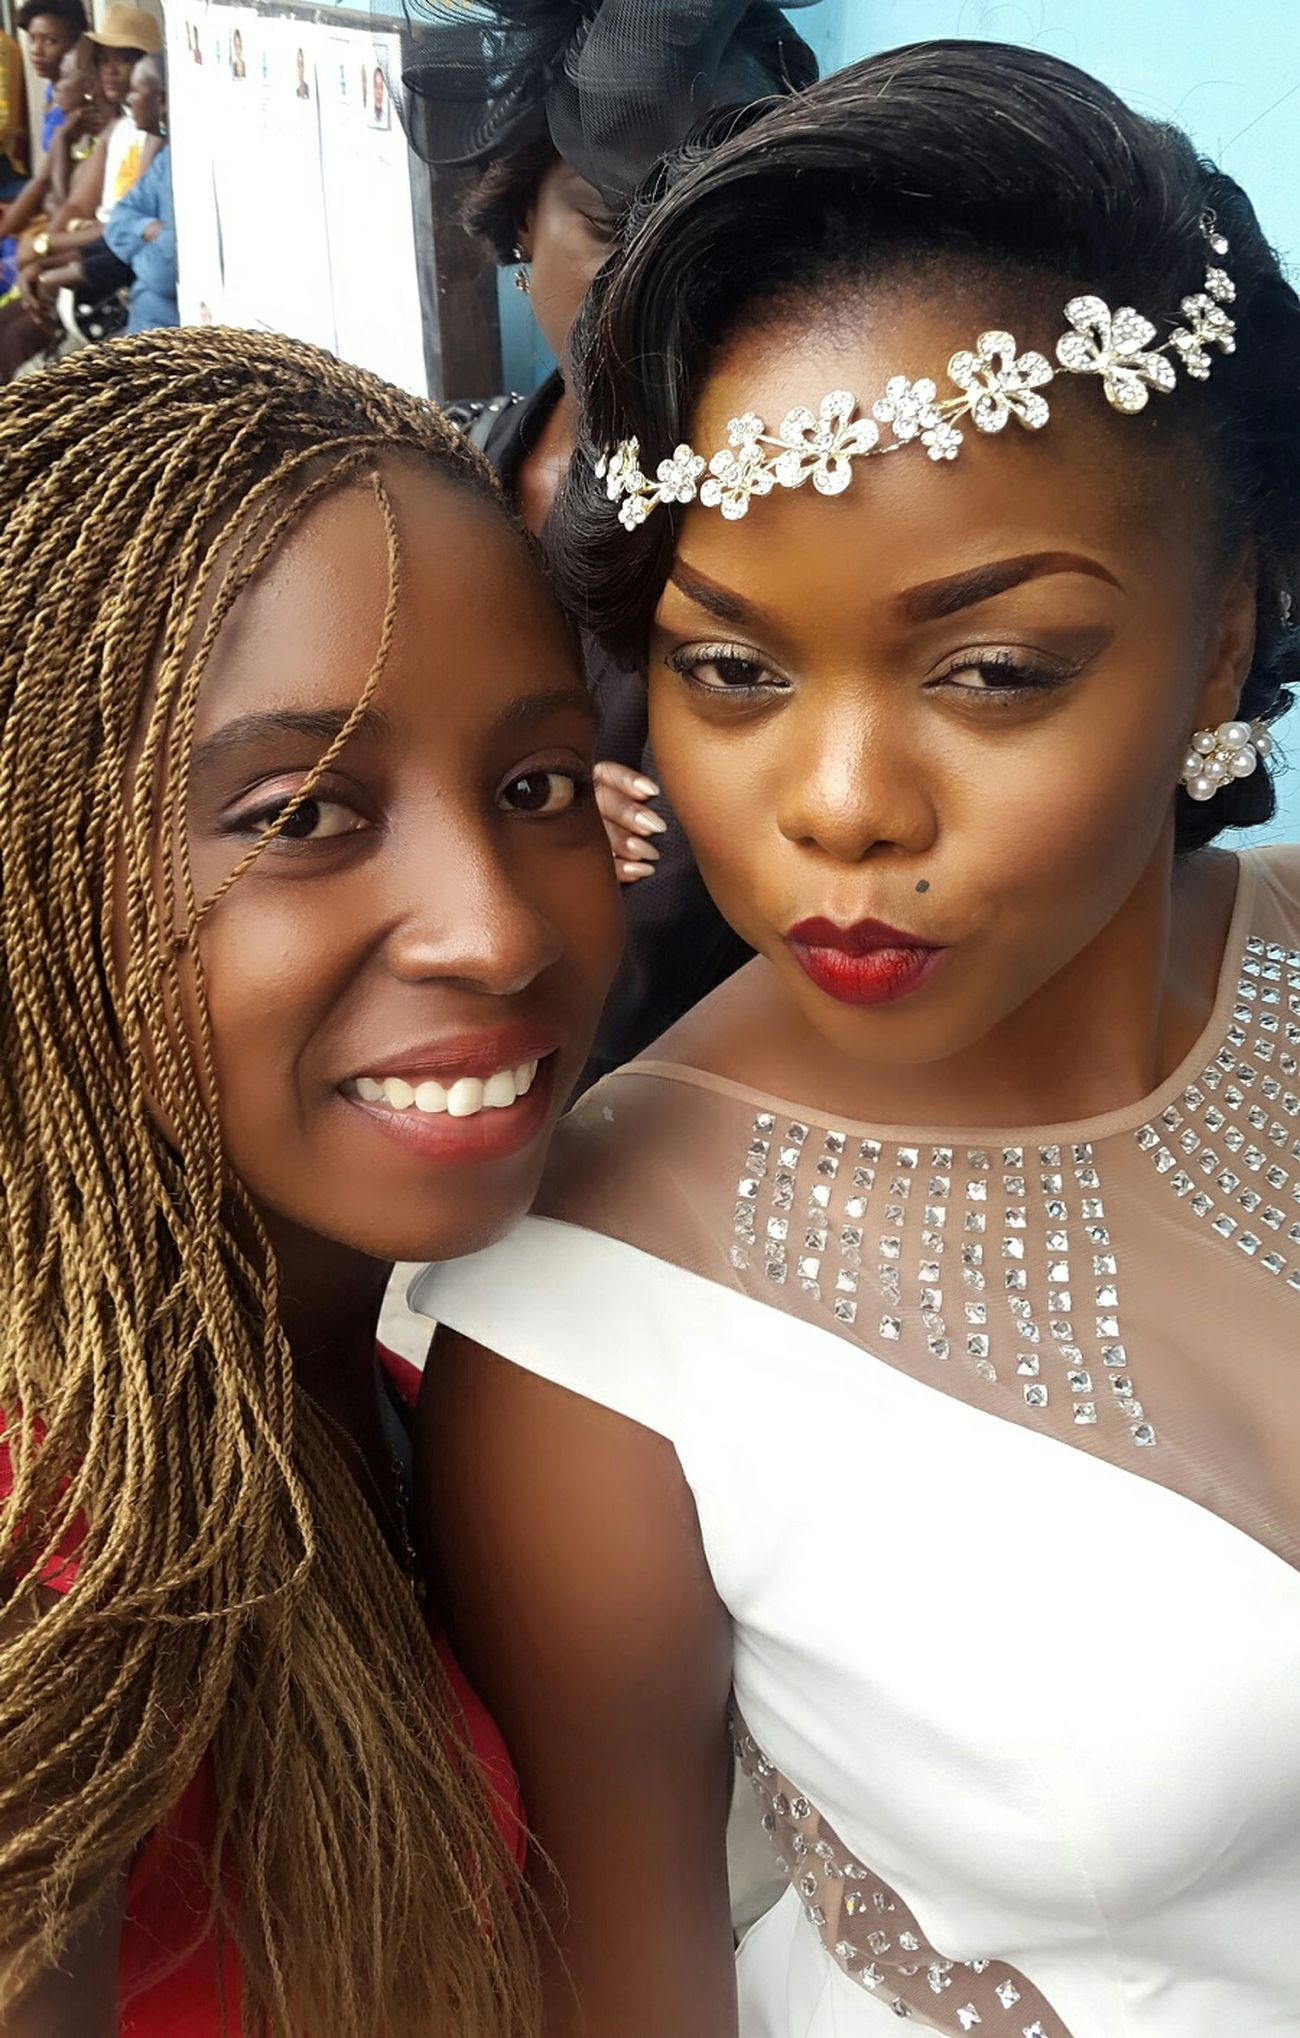 Enjoying Life Wedding Wedding Photography Kinshasa Civil Wedding  Drcongo Beautiful Beautiful Day Happy Time Congratulations Darling Proud of you.